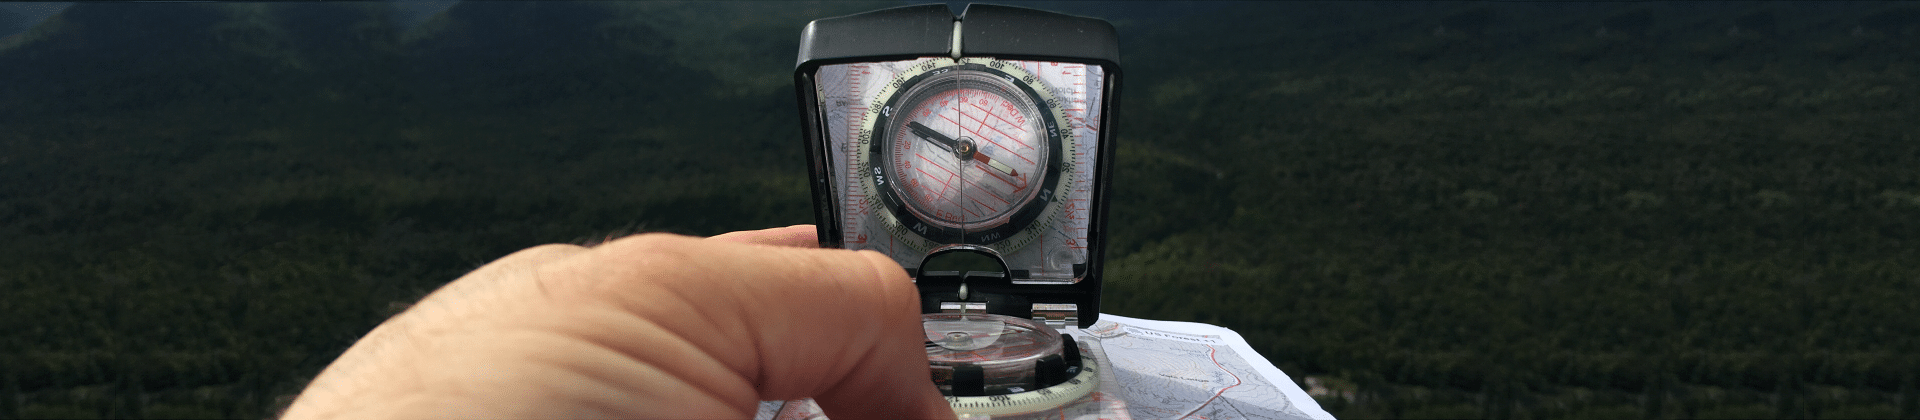 Best Survival Compasses Reviewed in Detail